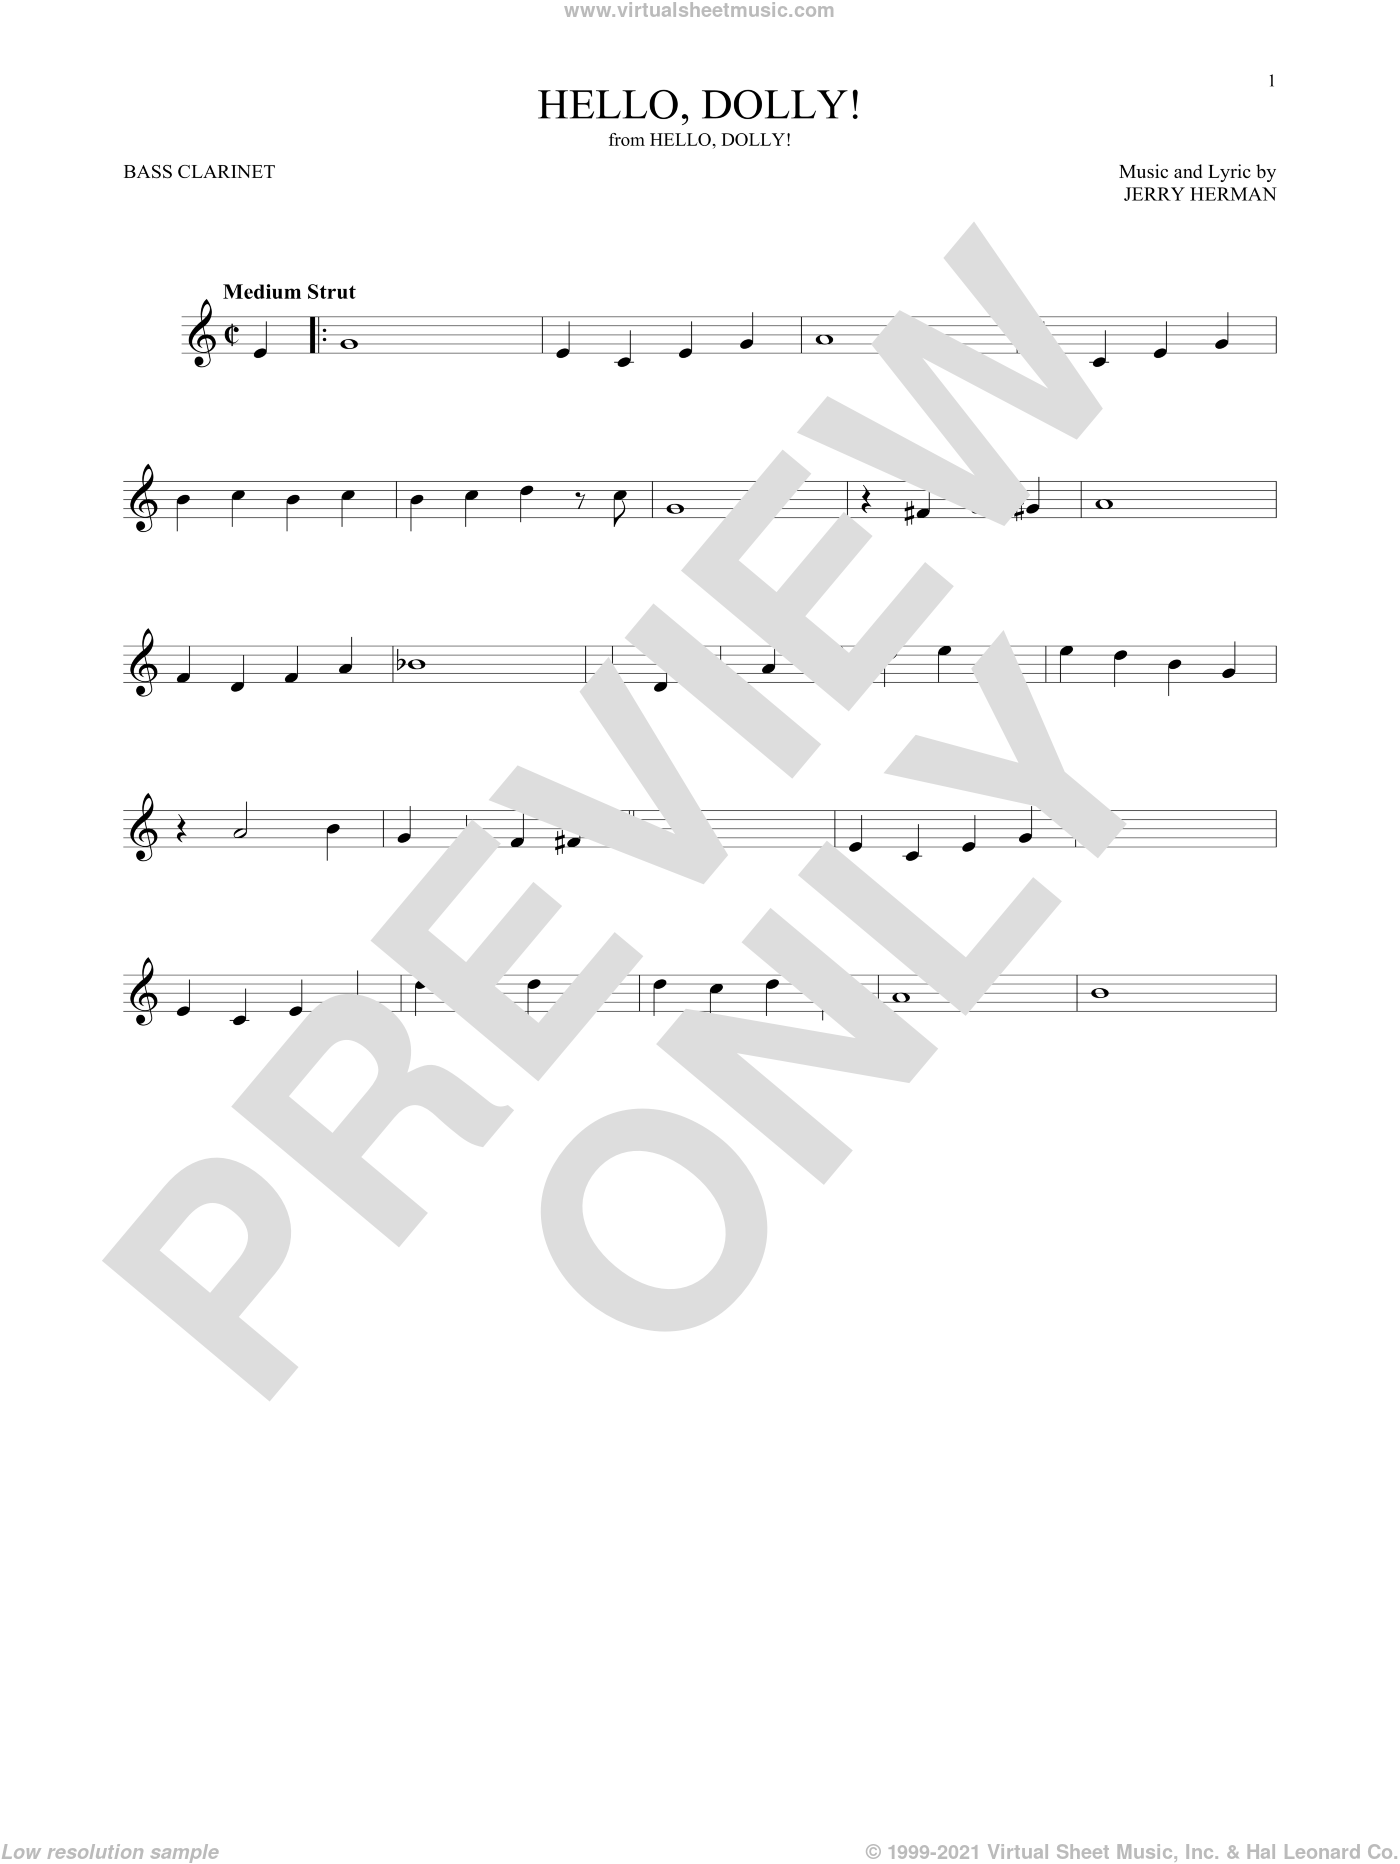 Hello, Dolly! sheet music for Bass Clarinet Solo (clarinetto basso) by Louis Armstrong and Jerry Herman, intermediate skill level